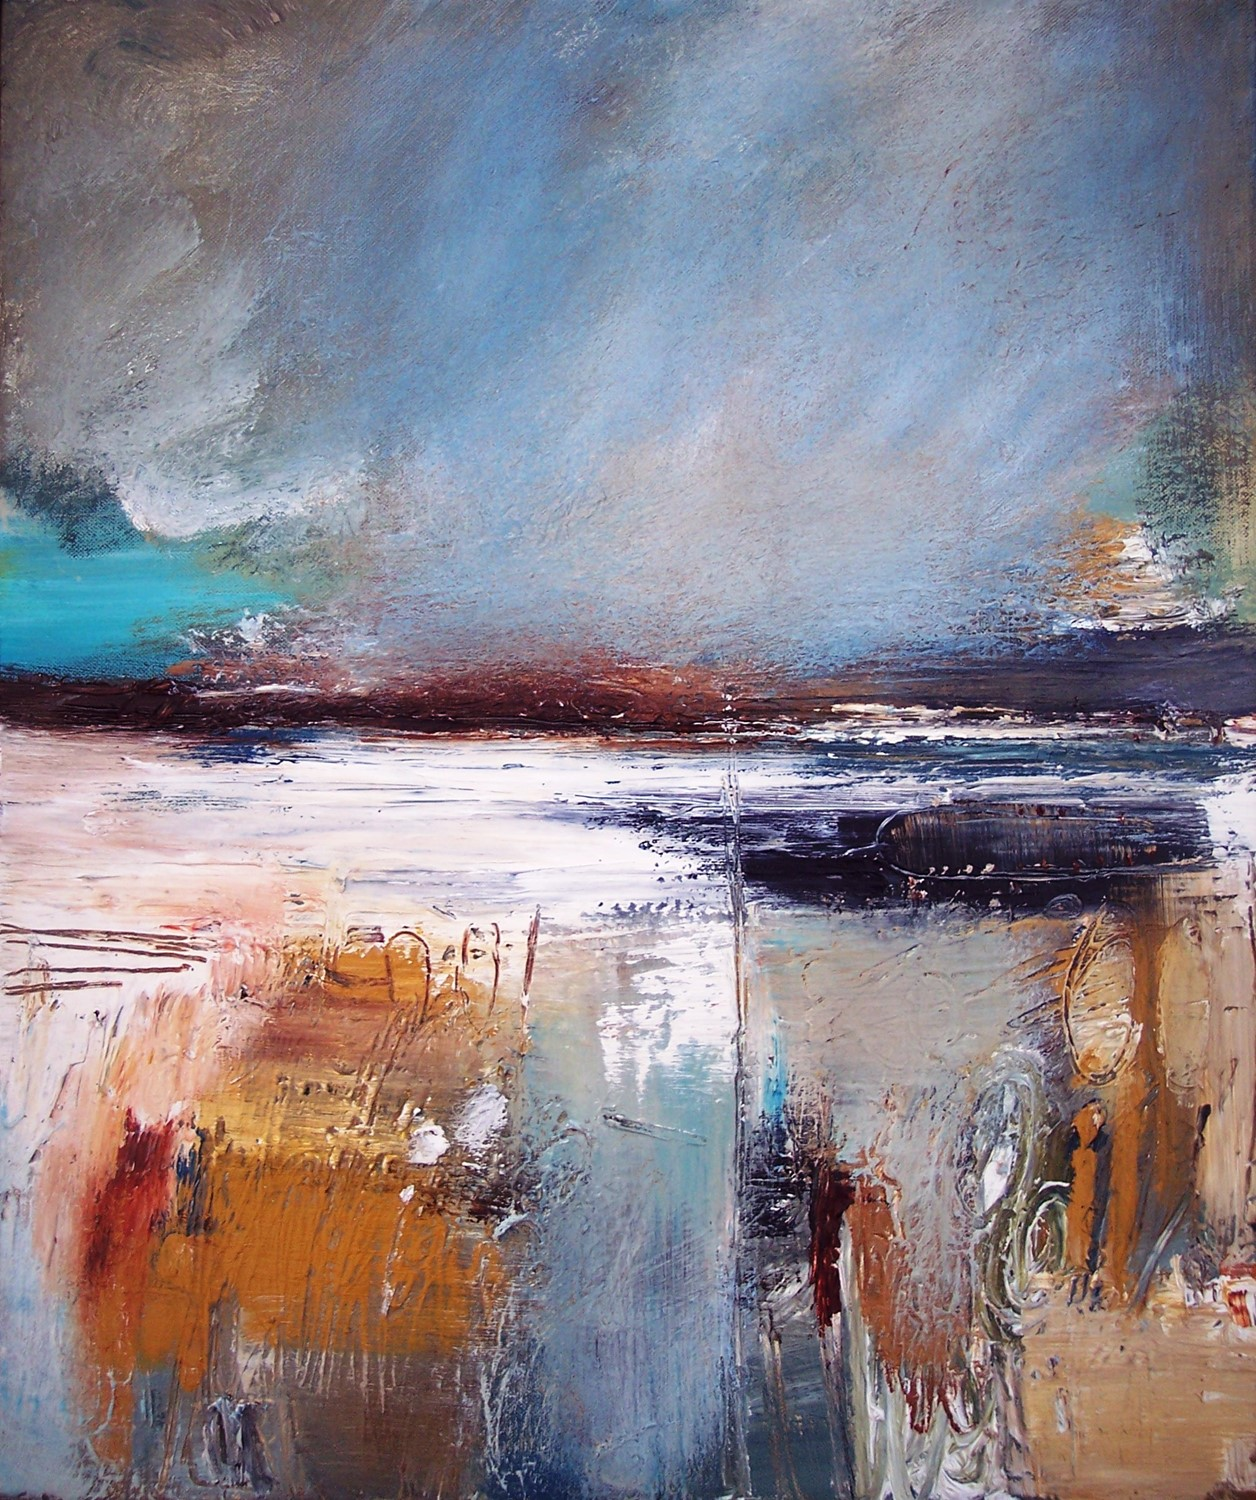 'Shades of Seashore' by artist Rosanne Barr